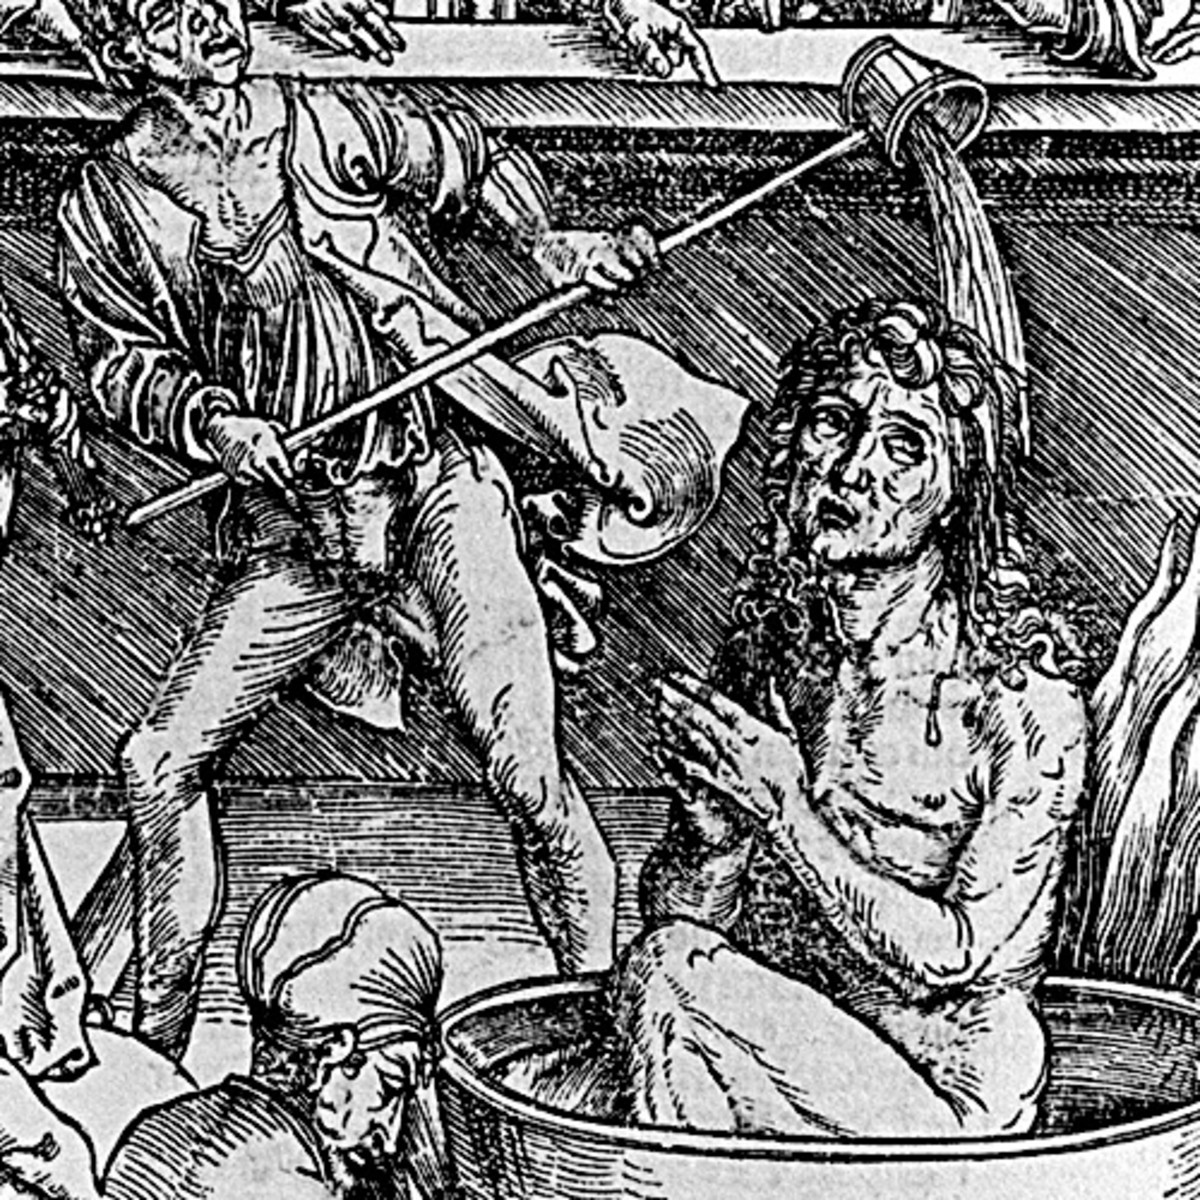 """Here we show a portion of 'The Martyrdom of St John the Evangelist' - the first Woodcut from the suite by Albrecht Durer known as """"The Apocalypse""""."""